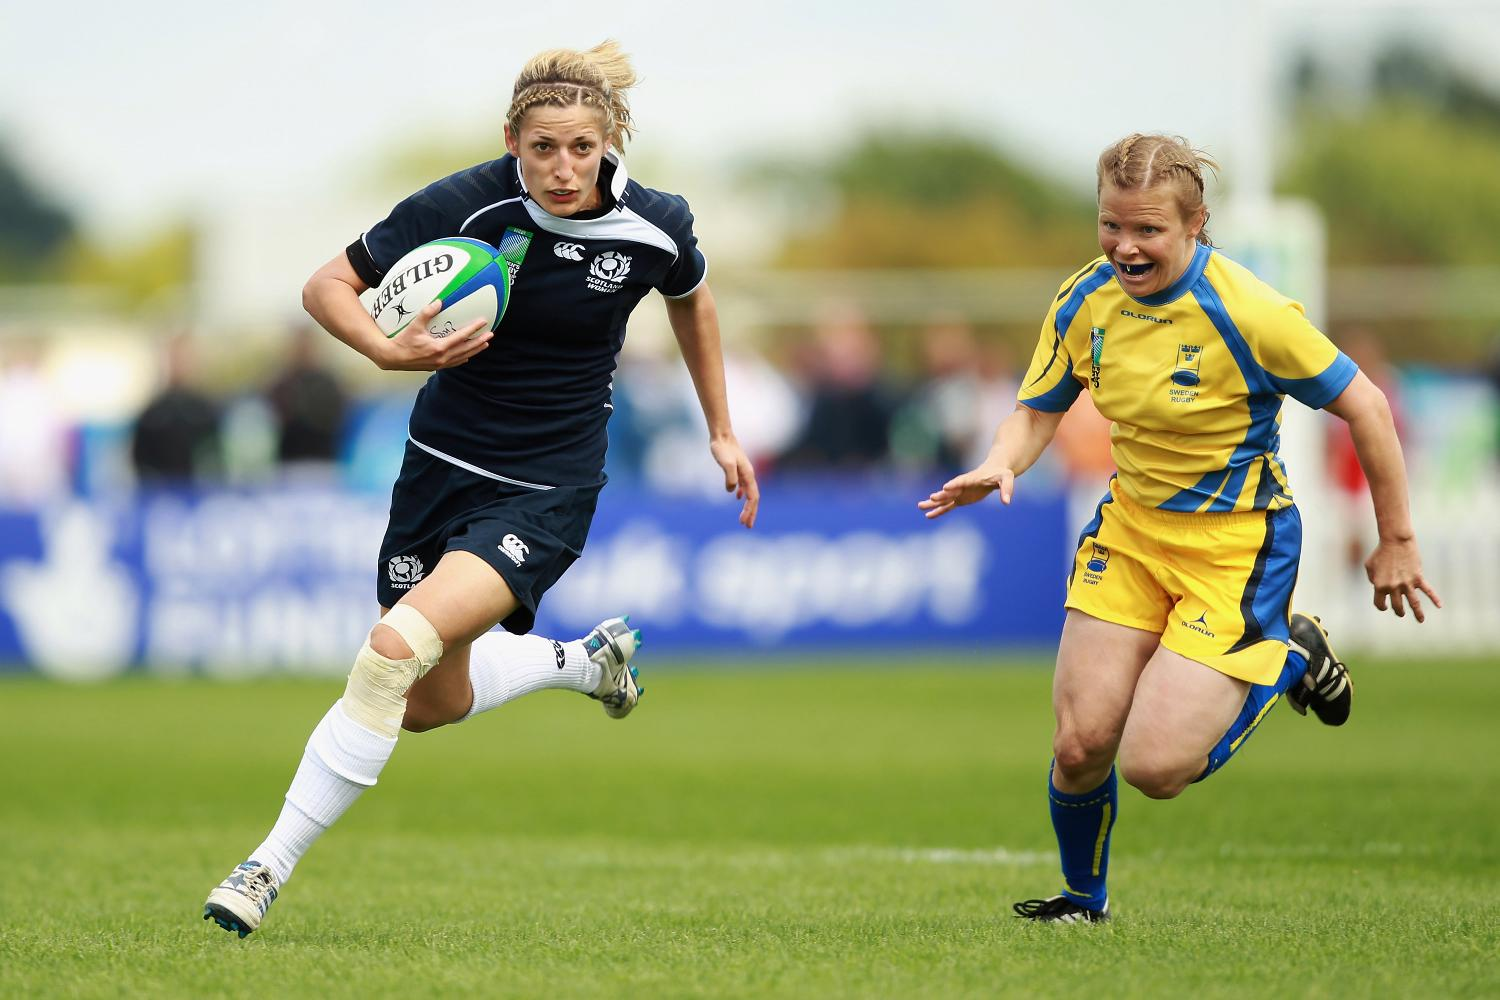 WRWC 2010: Katy Green of Scotland in action against Sweden